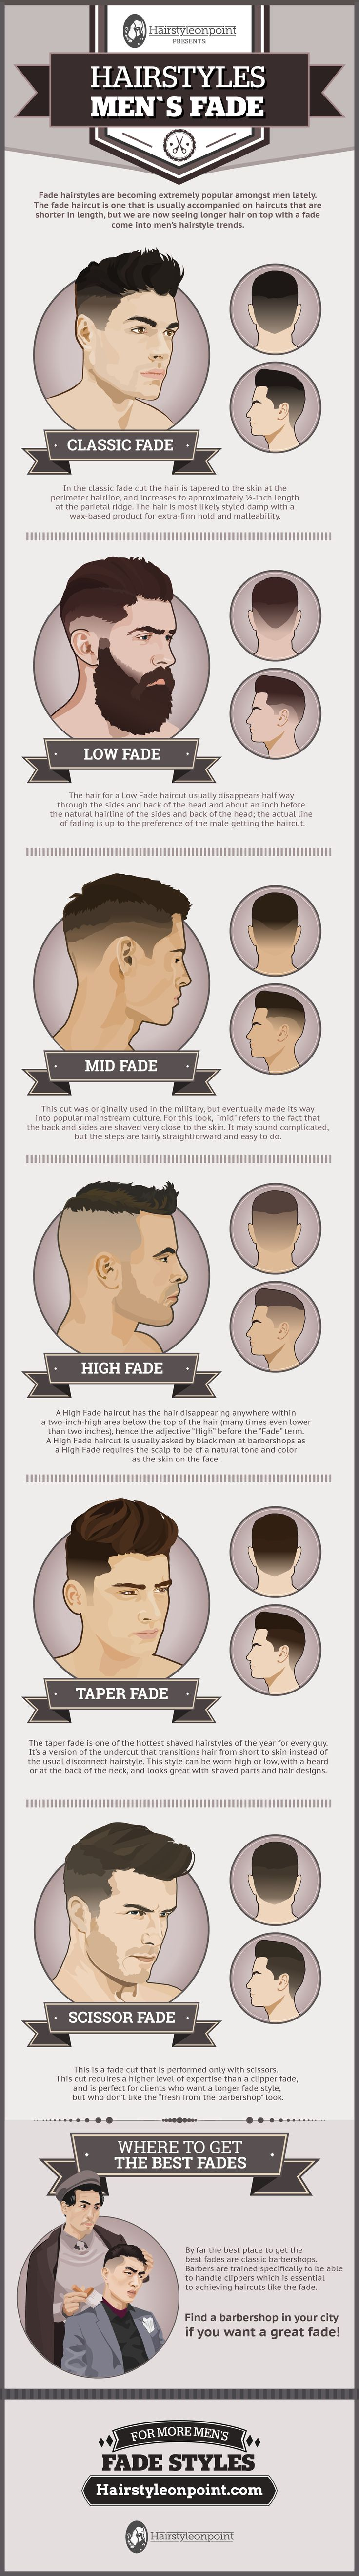 101 best Hairstyles images on Pinterest